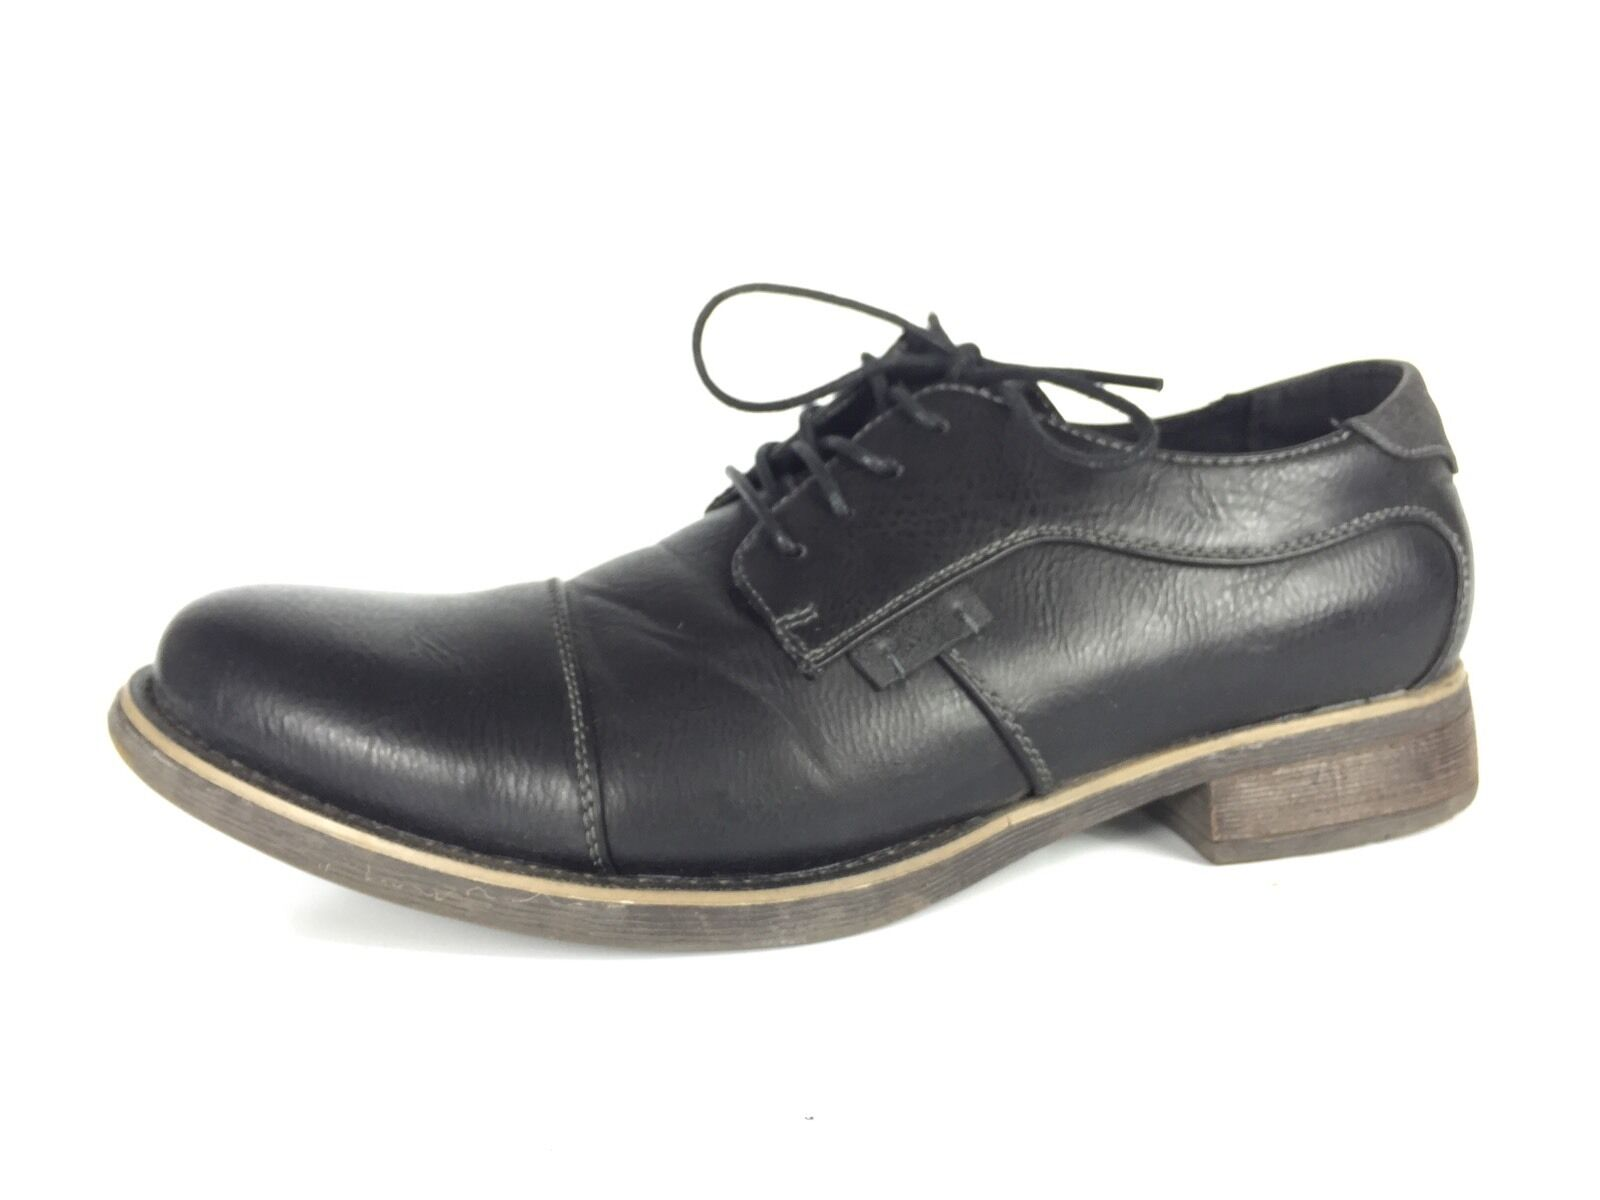 Madden Black M-Bully Men's Black Madden Dress Shoes Size 8.5 a88faa